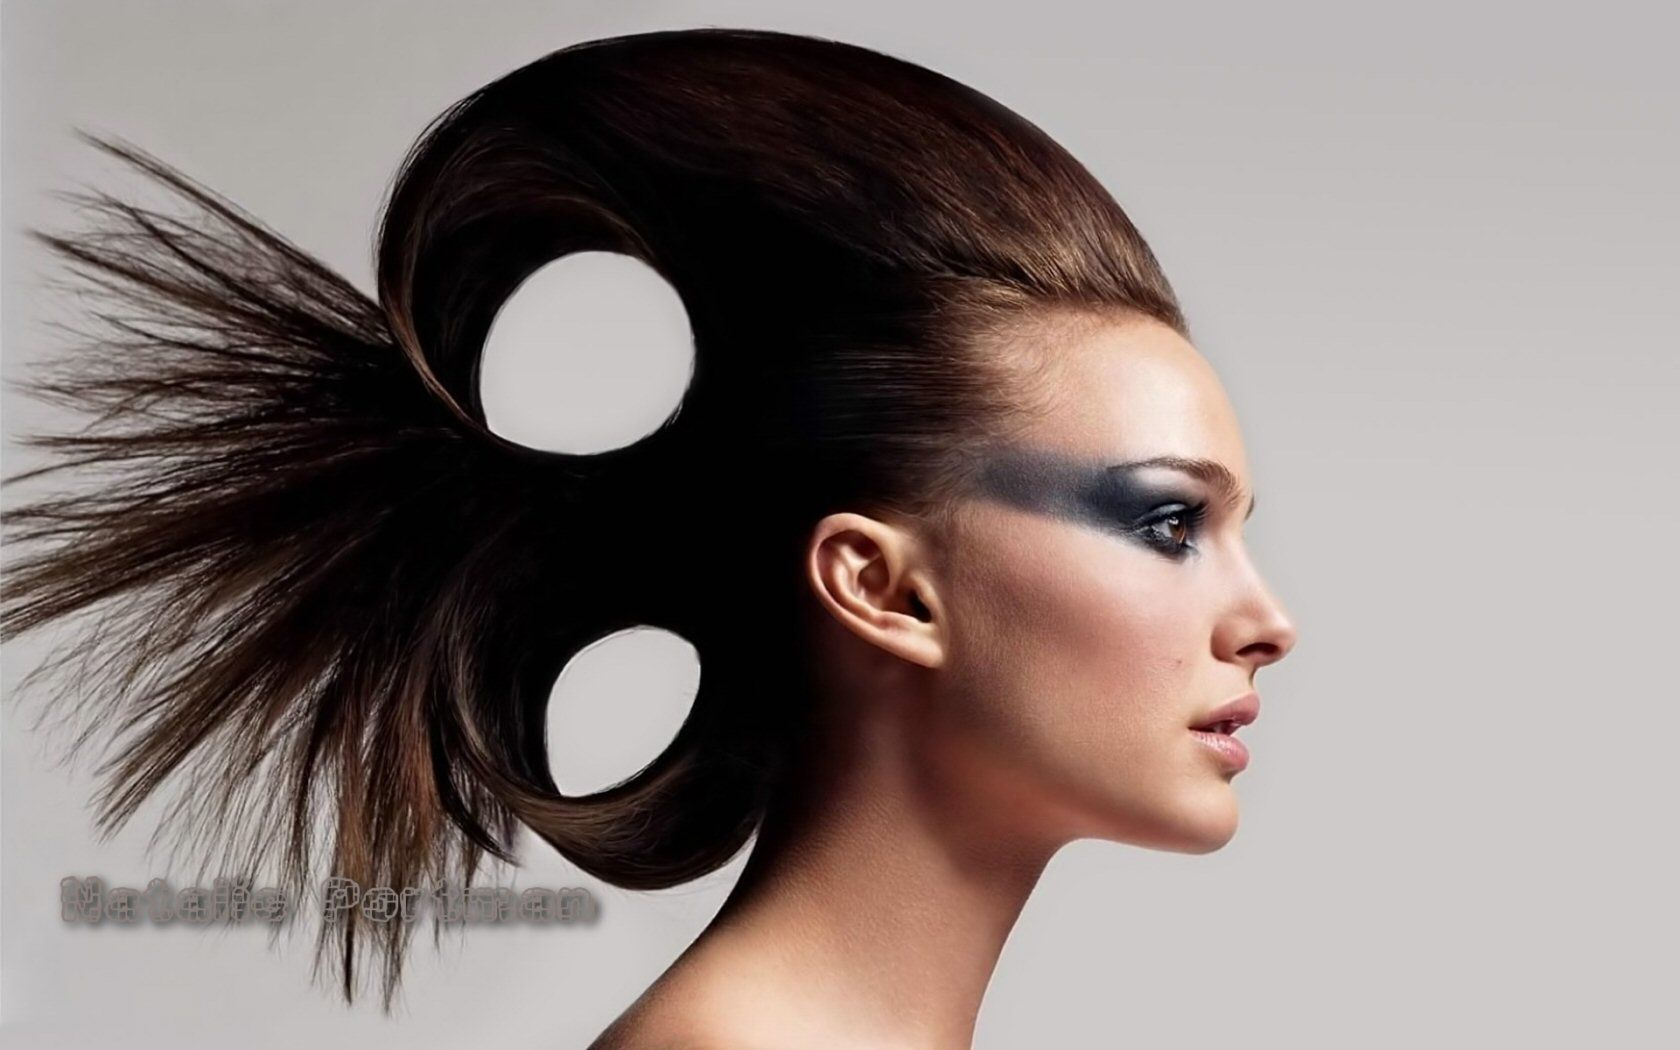 Hair Styling Glamorous Black Hair Styles  A Personal Guide To Hairstyling  Tempat Untuk